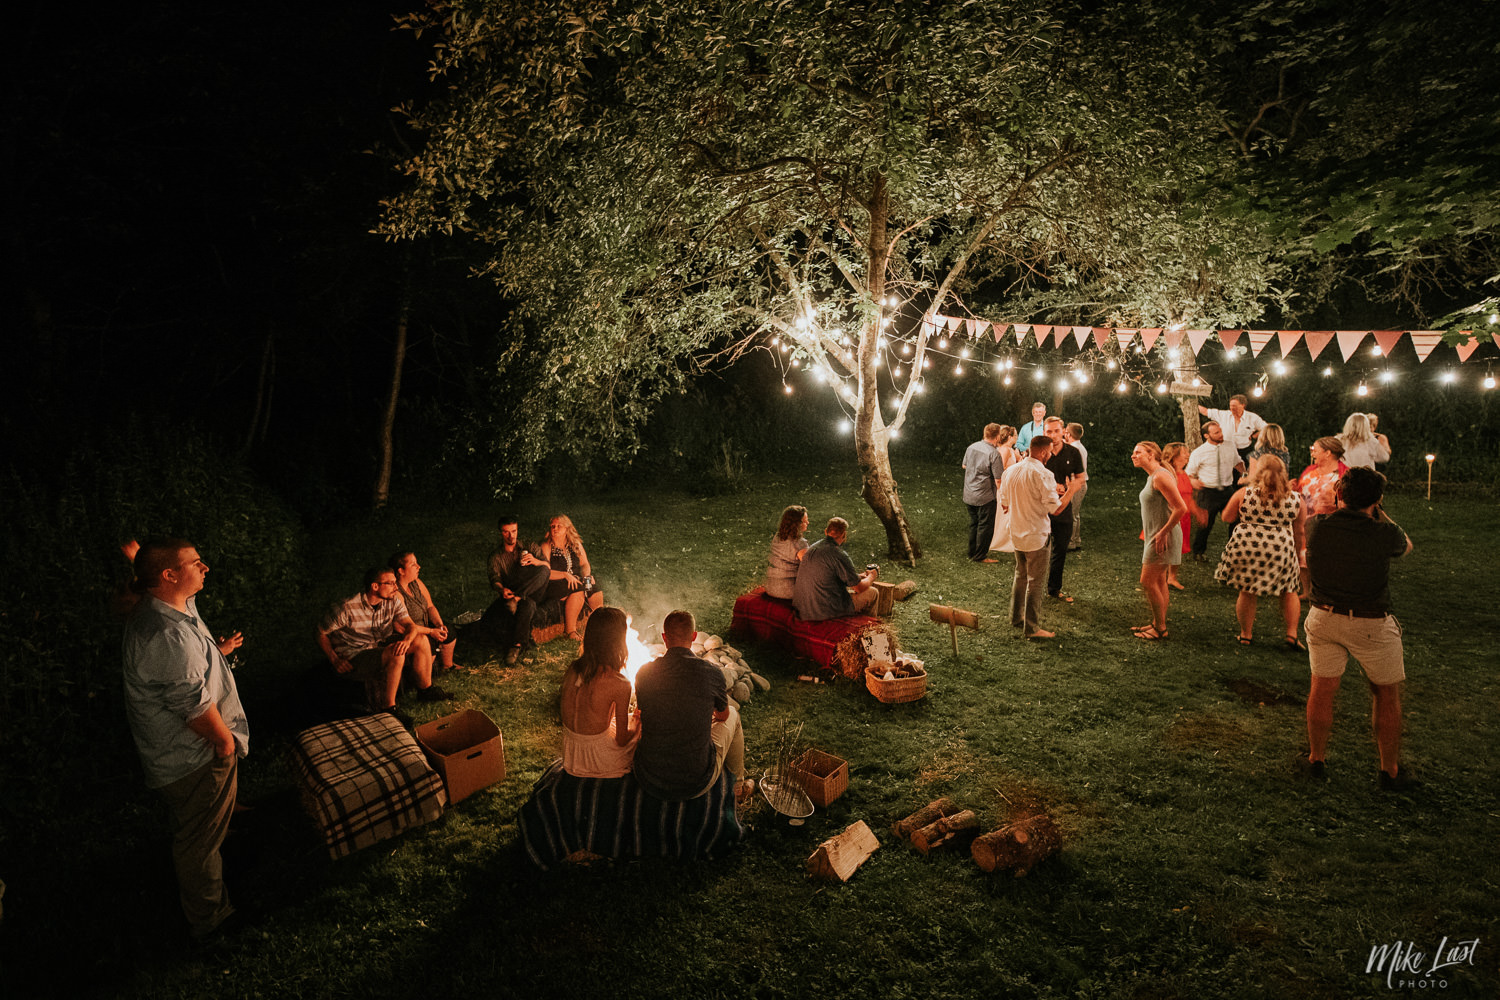 Nova Scotia backyard wedding under string lights with a camp fire.